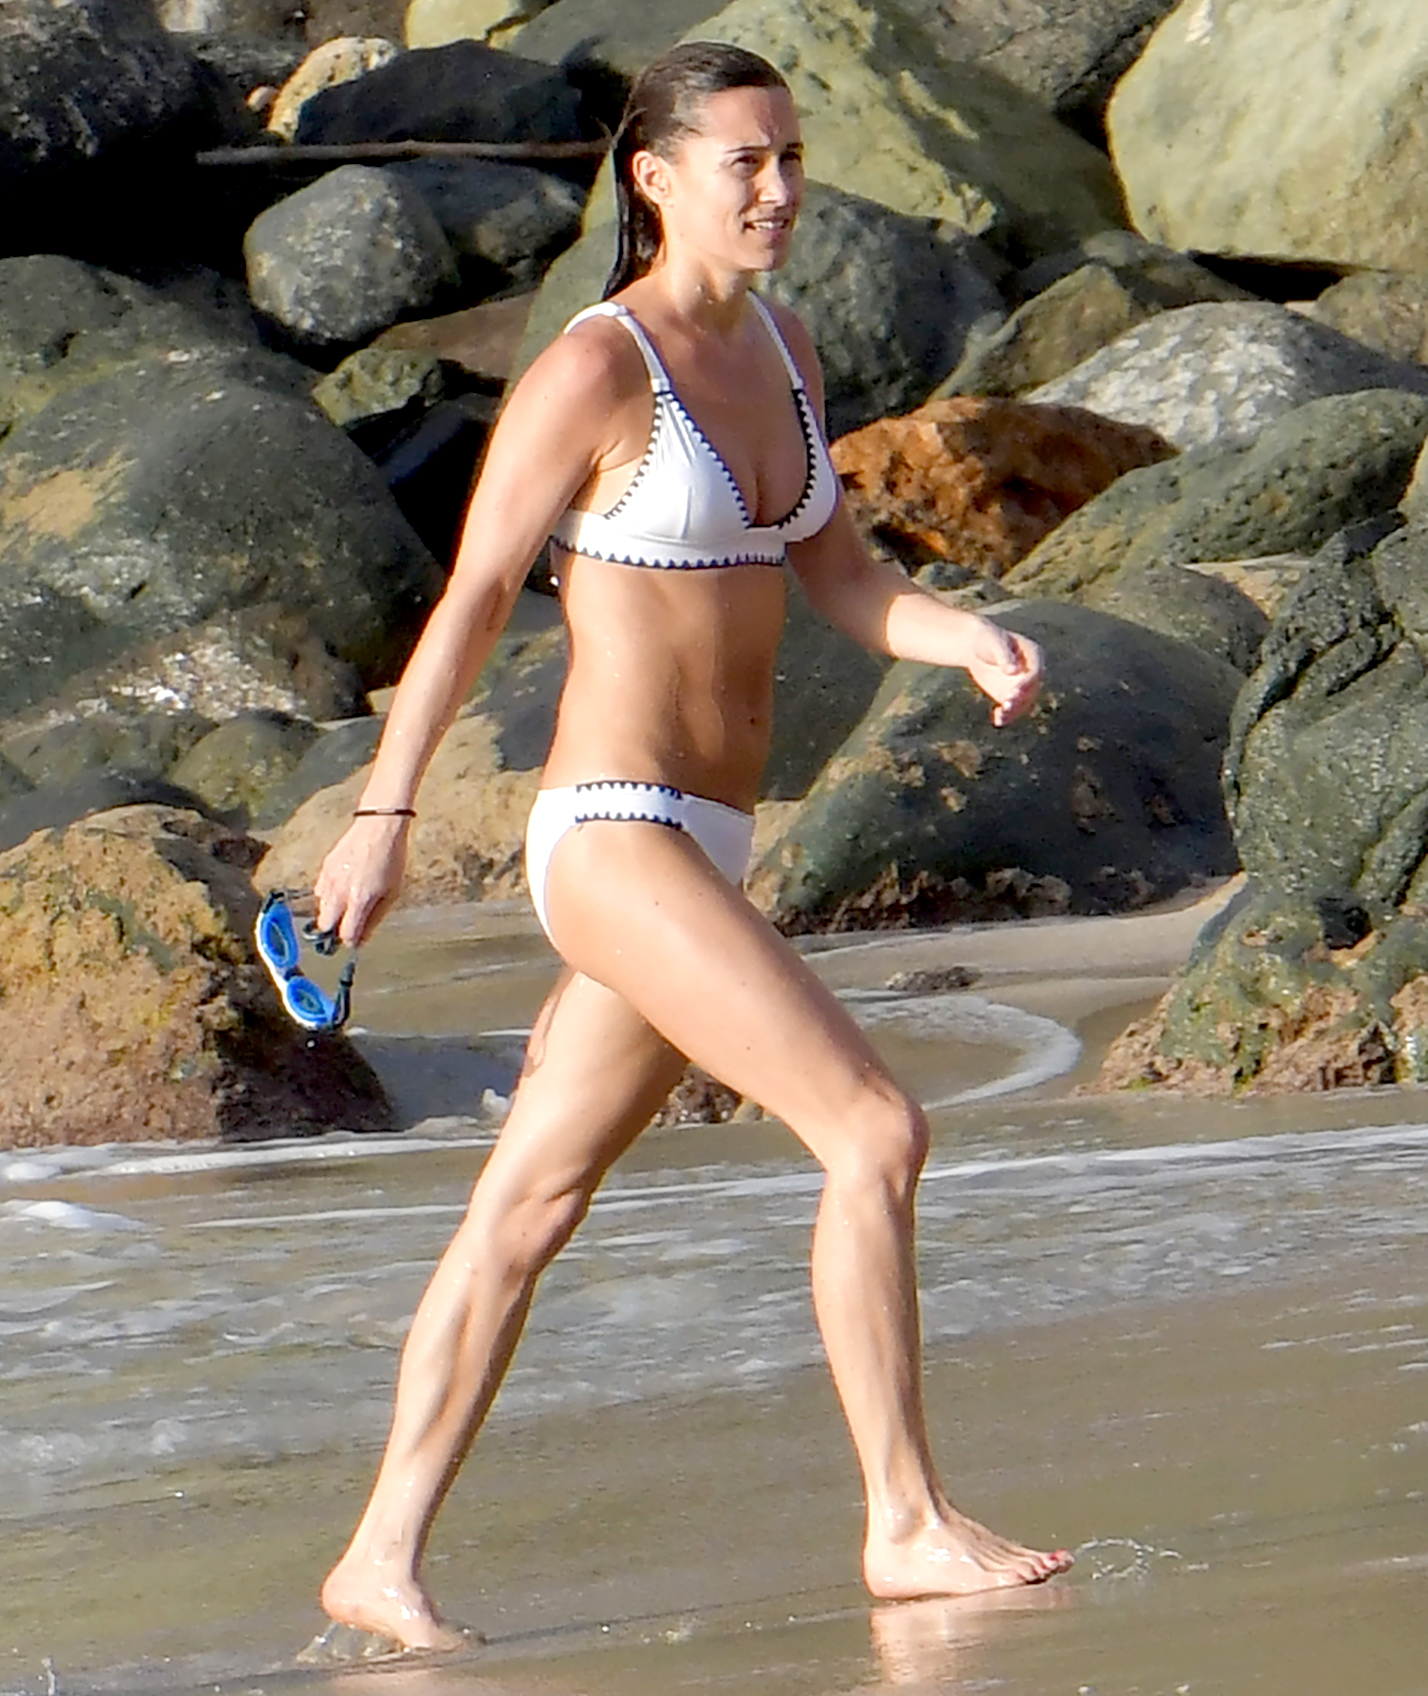 Pippa-Middleton-white-bikini-st-barts-James-Matthews - Middleton's bikini not only showed off her abs and arms, but her toned calf muscles.